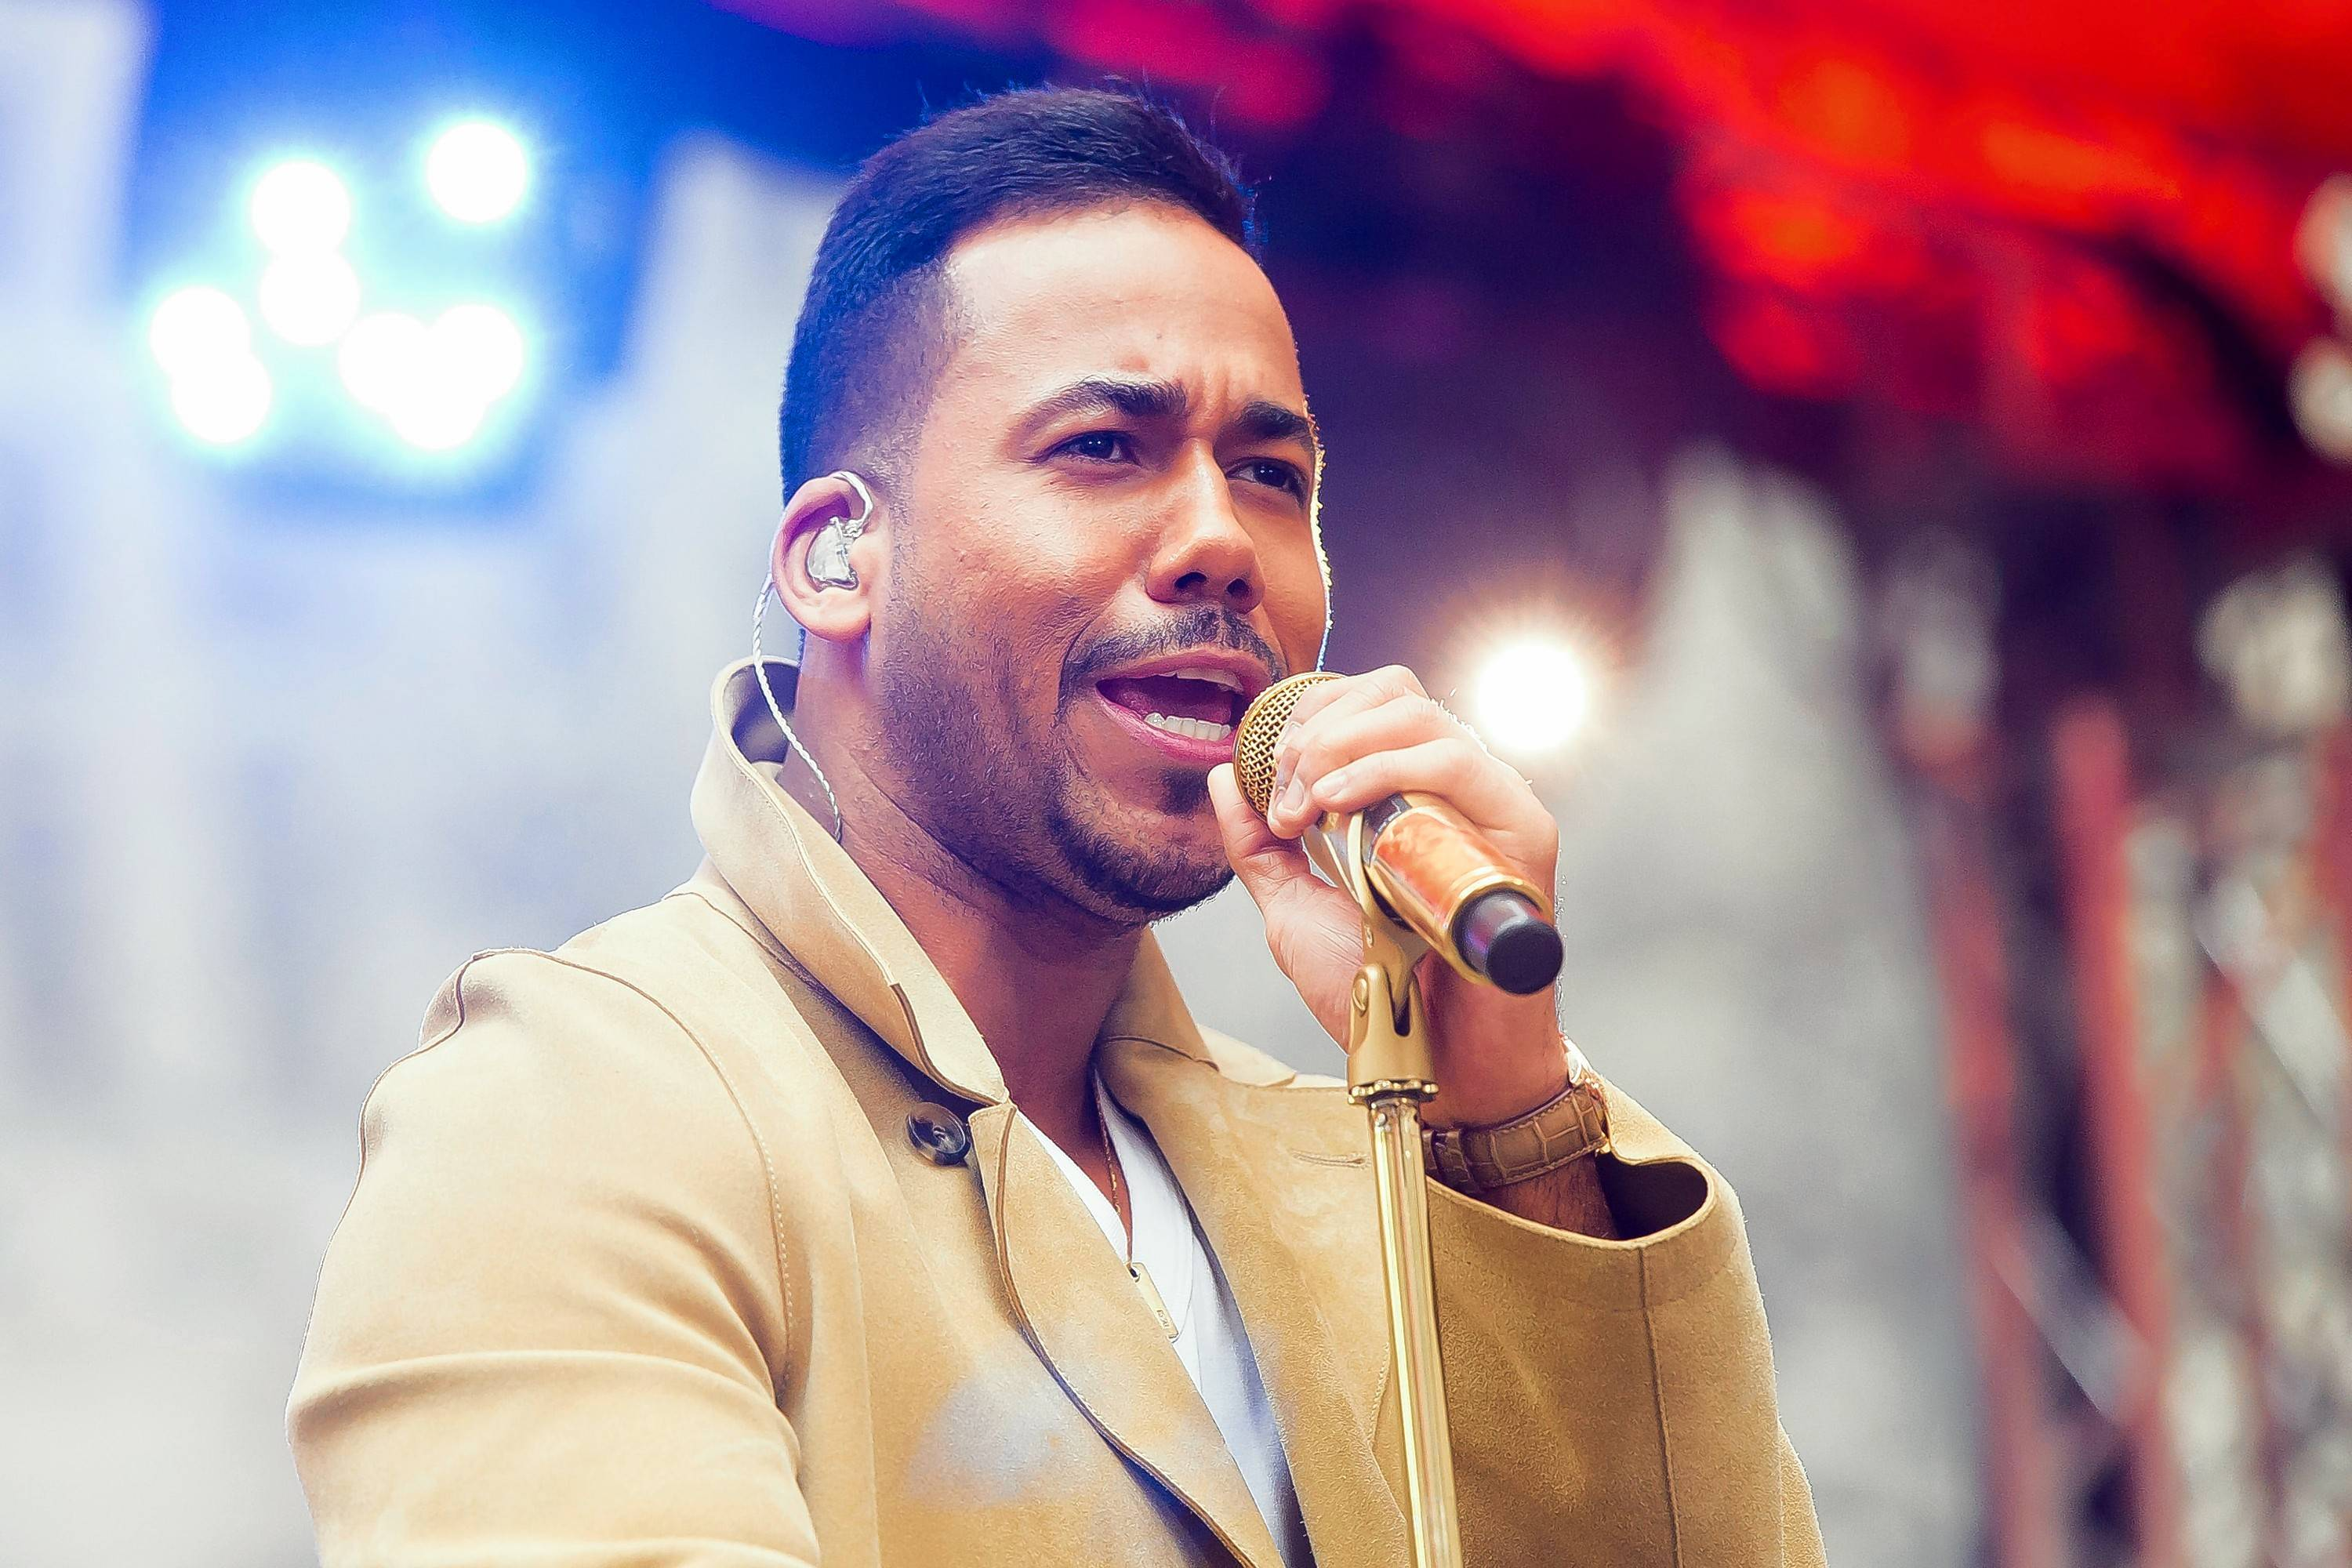 Romeo Santos performs Tuesday, Oct. 16, at the Allstate Arena in Rosemont.